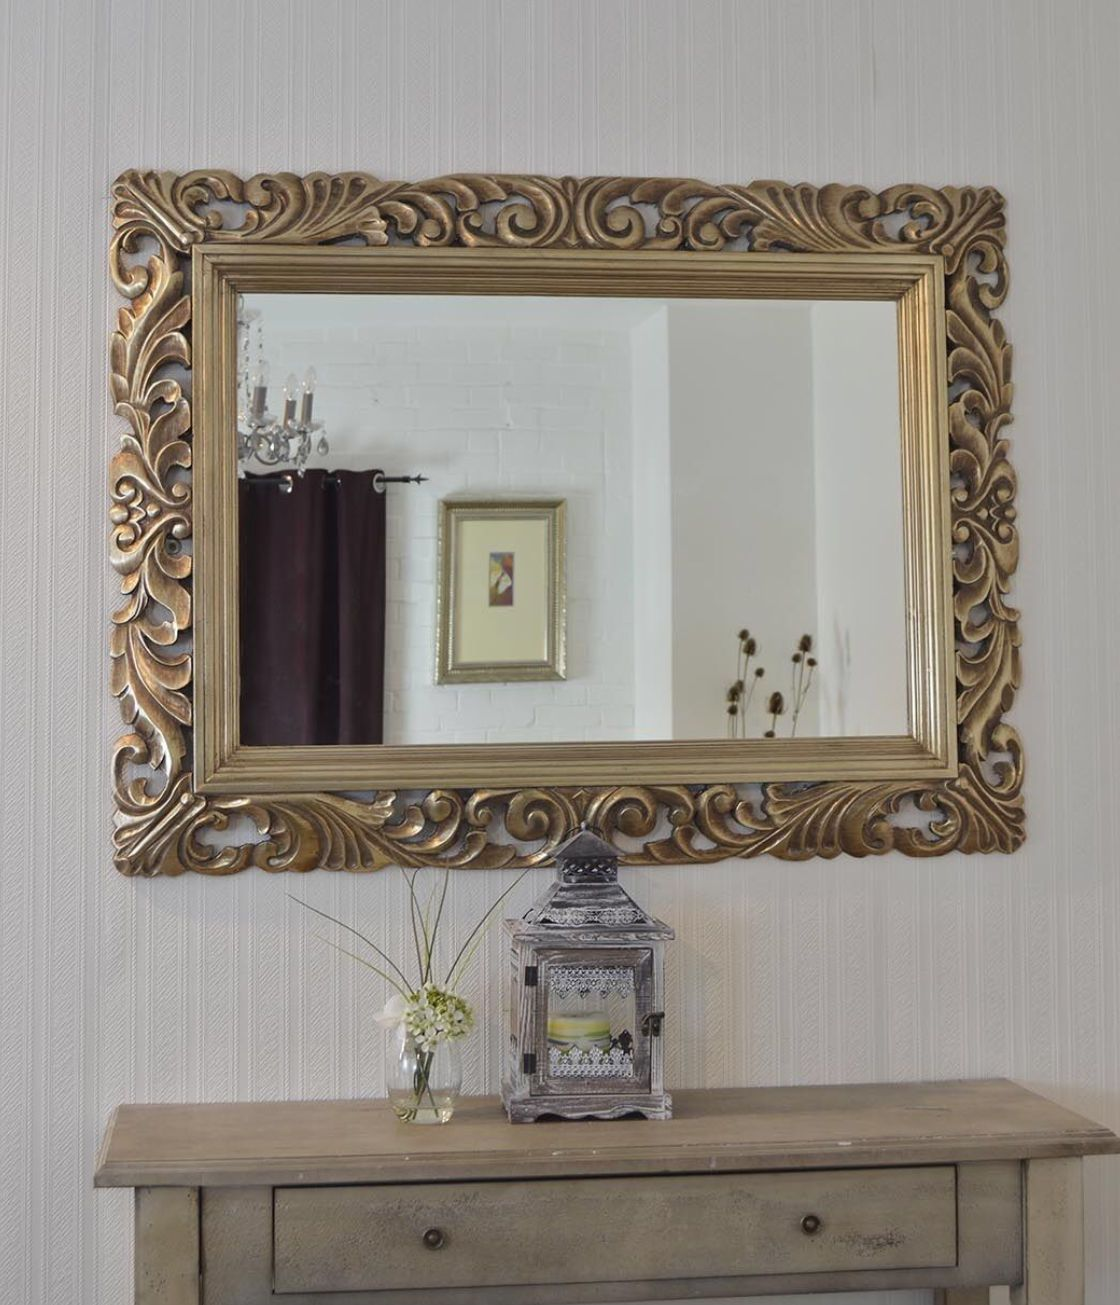 John Lewis Ornate Leaf Wall Mirror 122cm X 91cm Champagne New